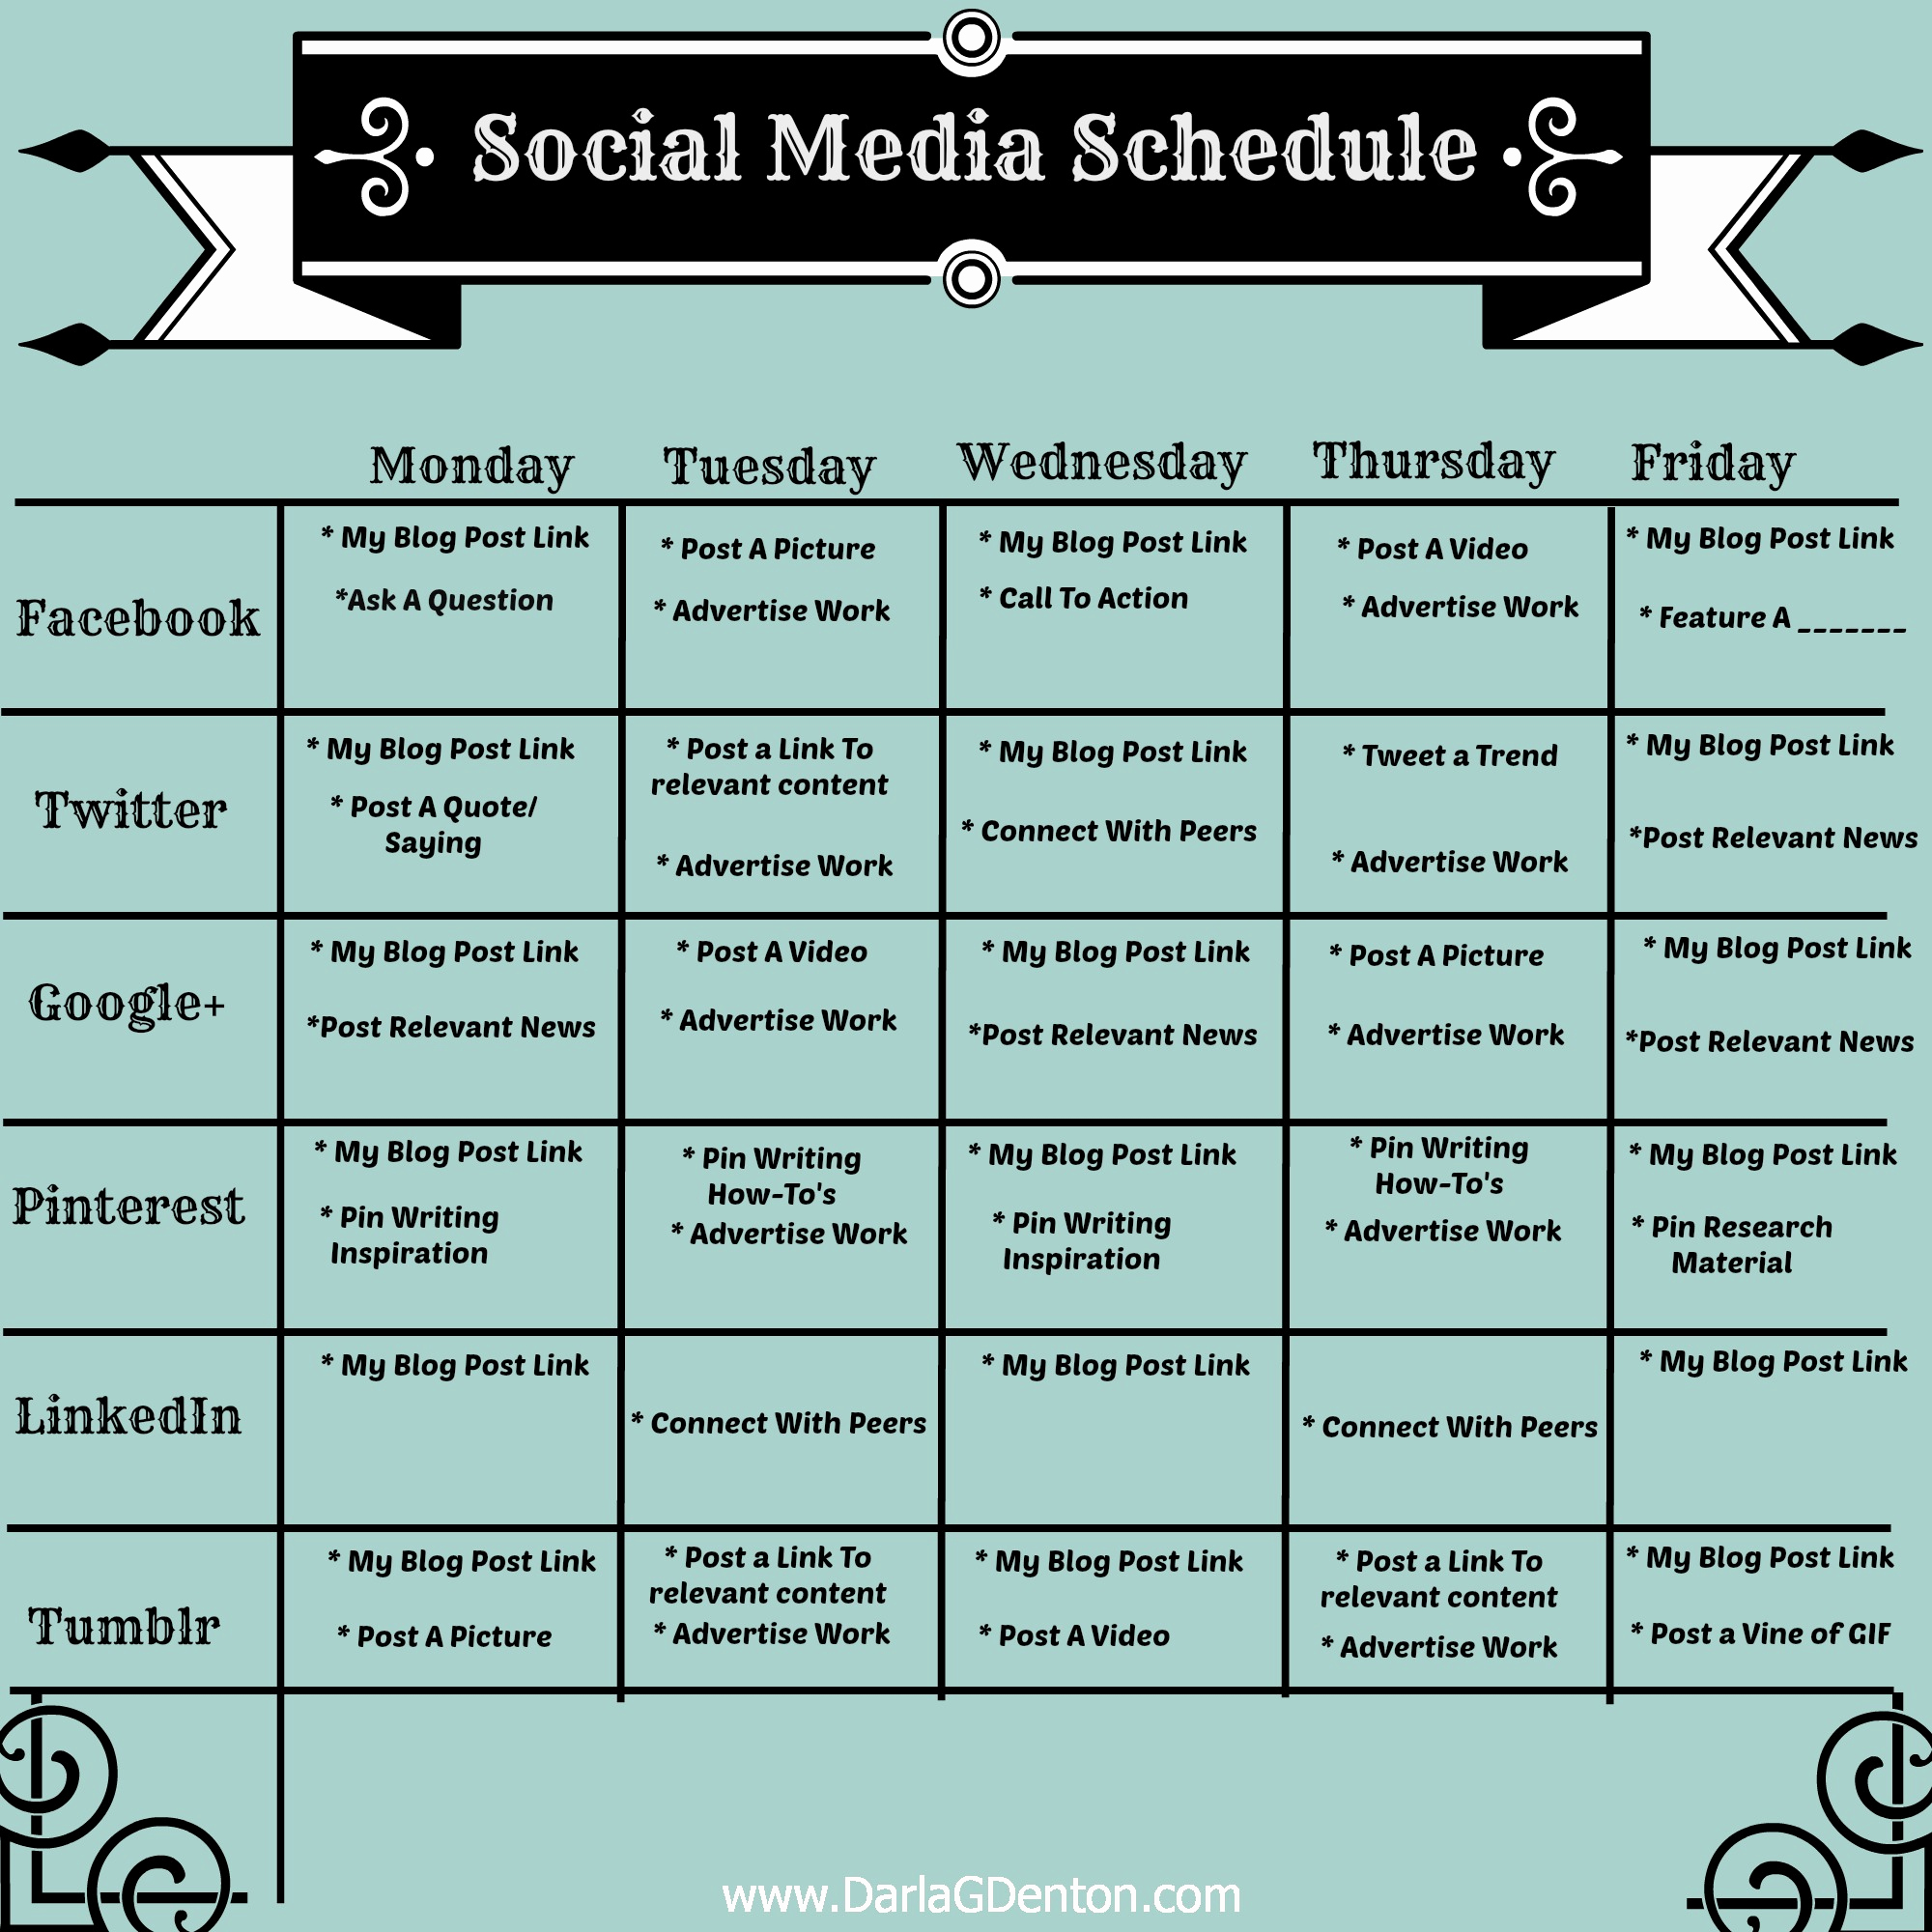 Social Media Schedule Template Beautiful Job Search Washington County Pa social Media Dashboards